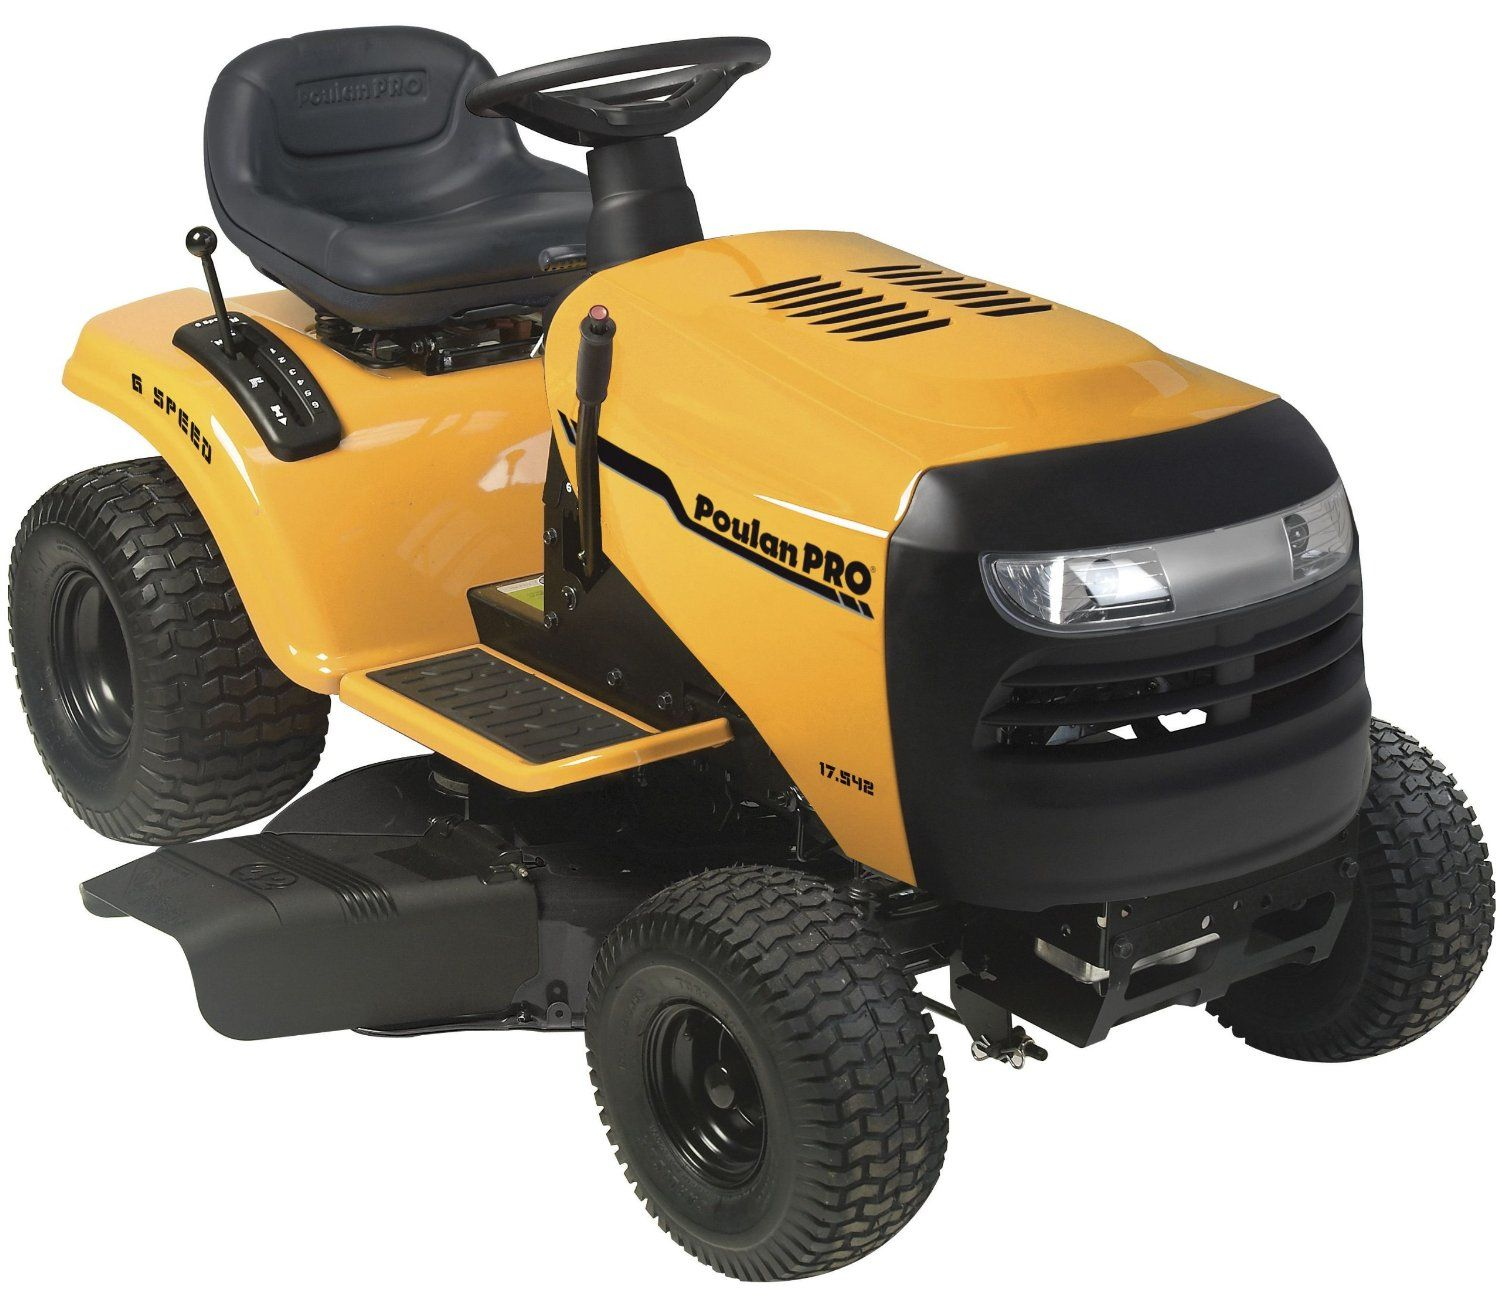 Poulan Pro Pb17542lt 17 5 Hp 6 Sd Lawn Tractor 42 Inch